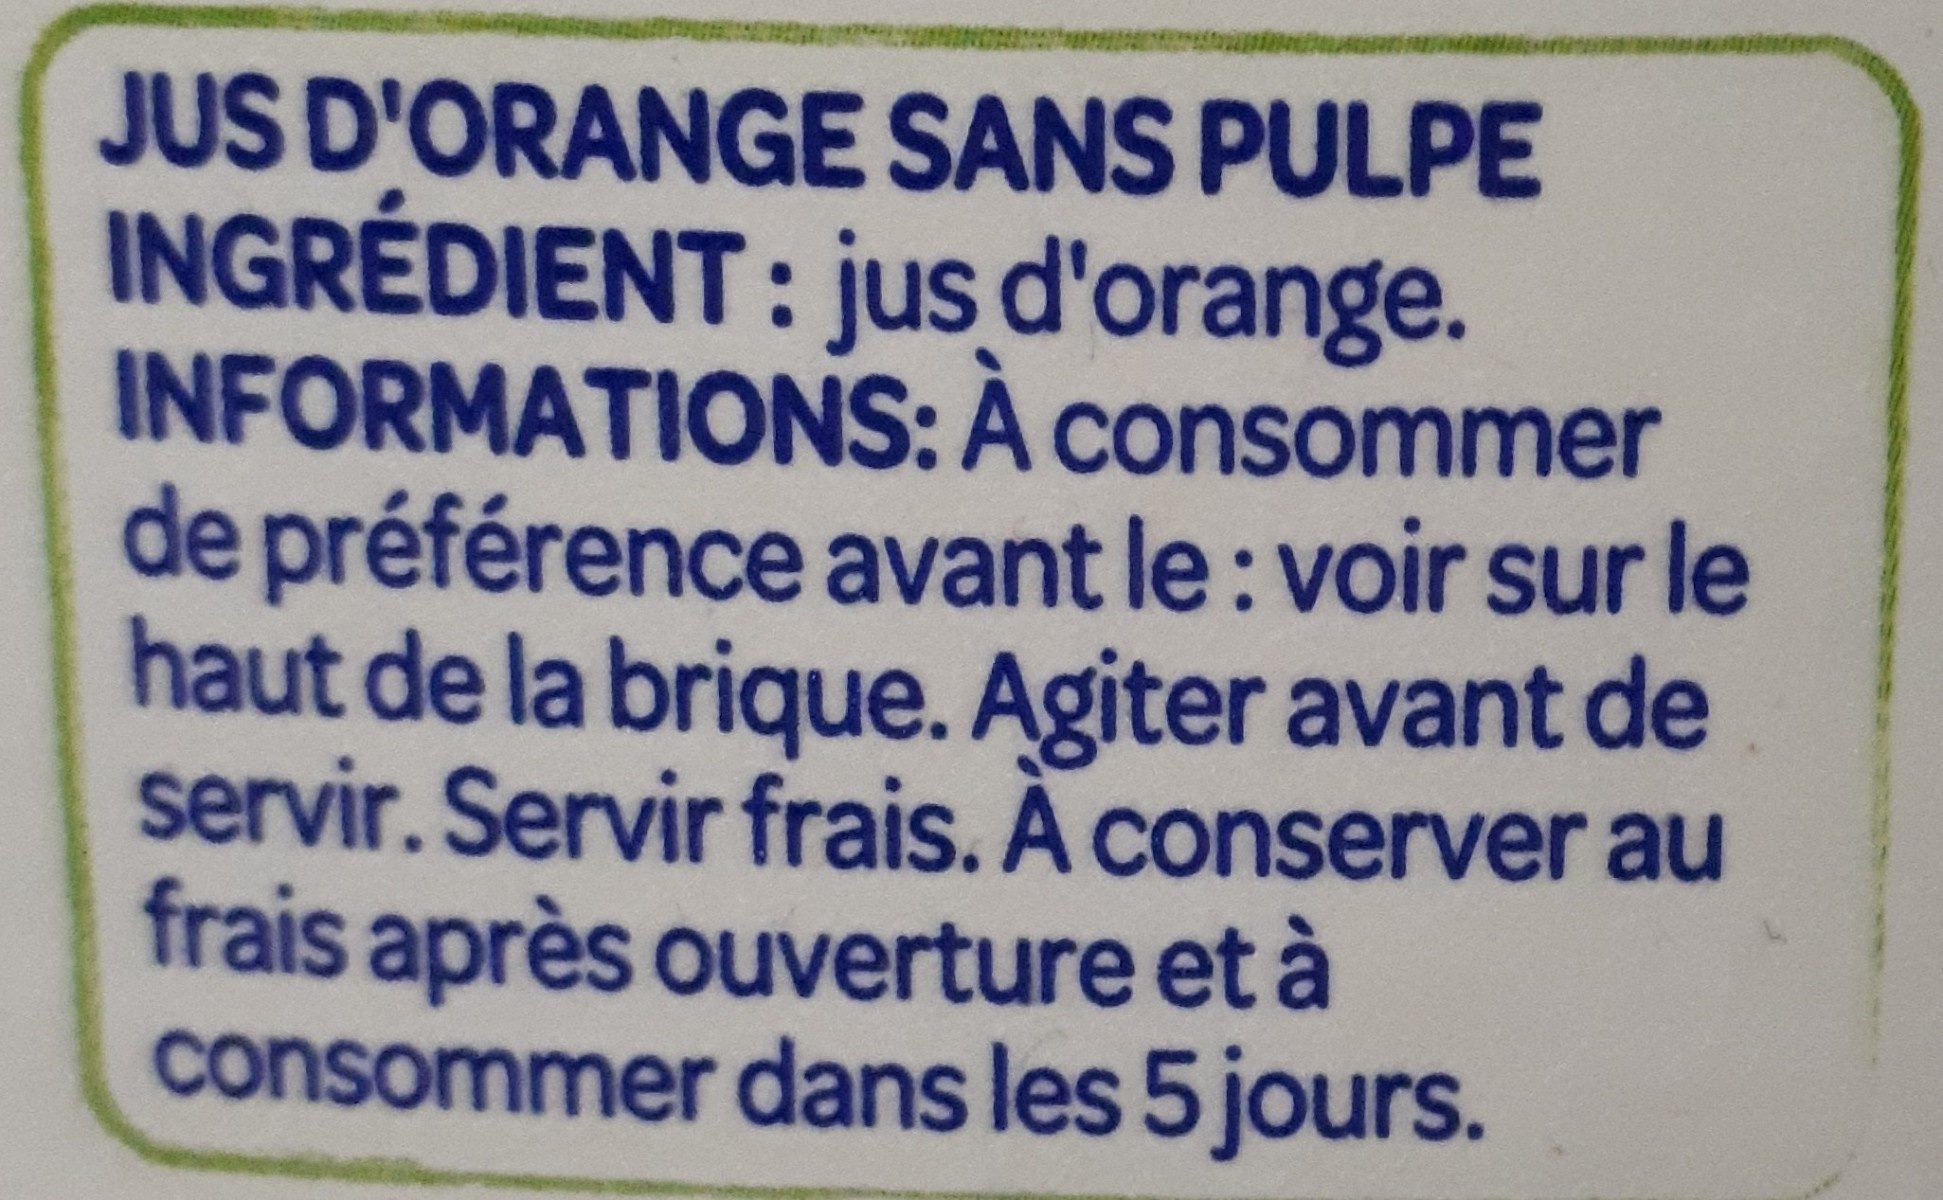 Jus d'orange 100% pur jus - Ingredients